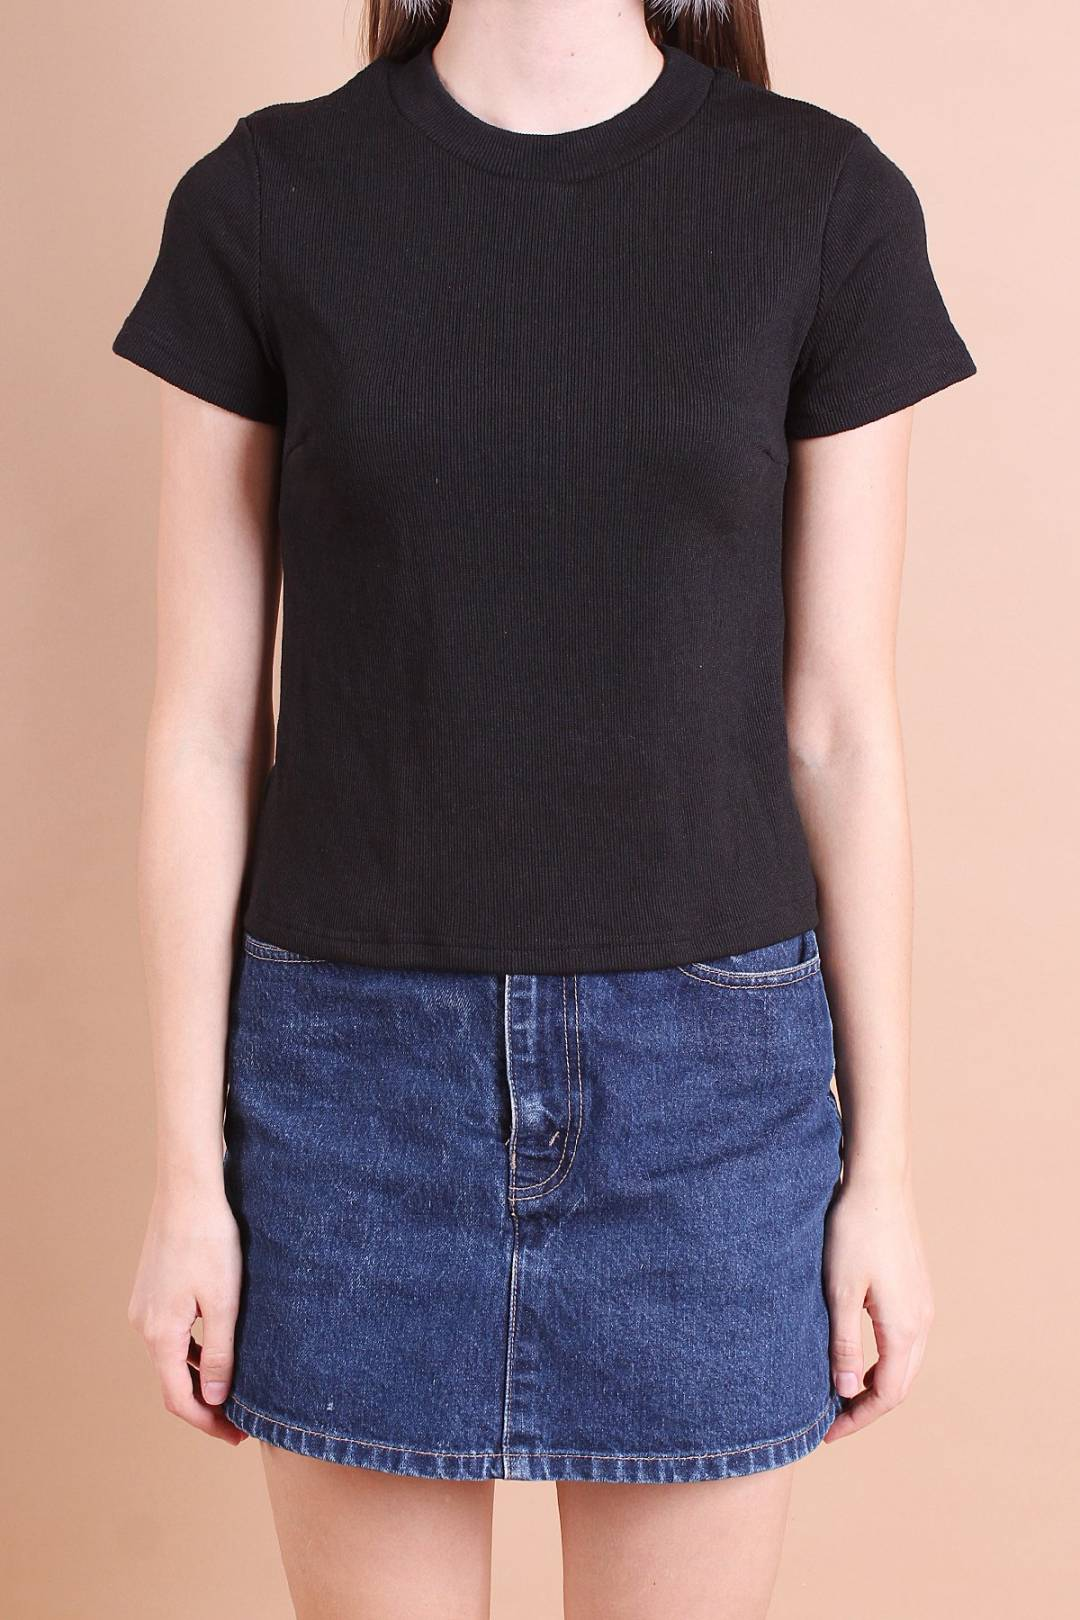 HAILEY EVERYDAY RIBBED TOP IN BLACK [S/M/L]